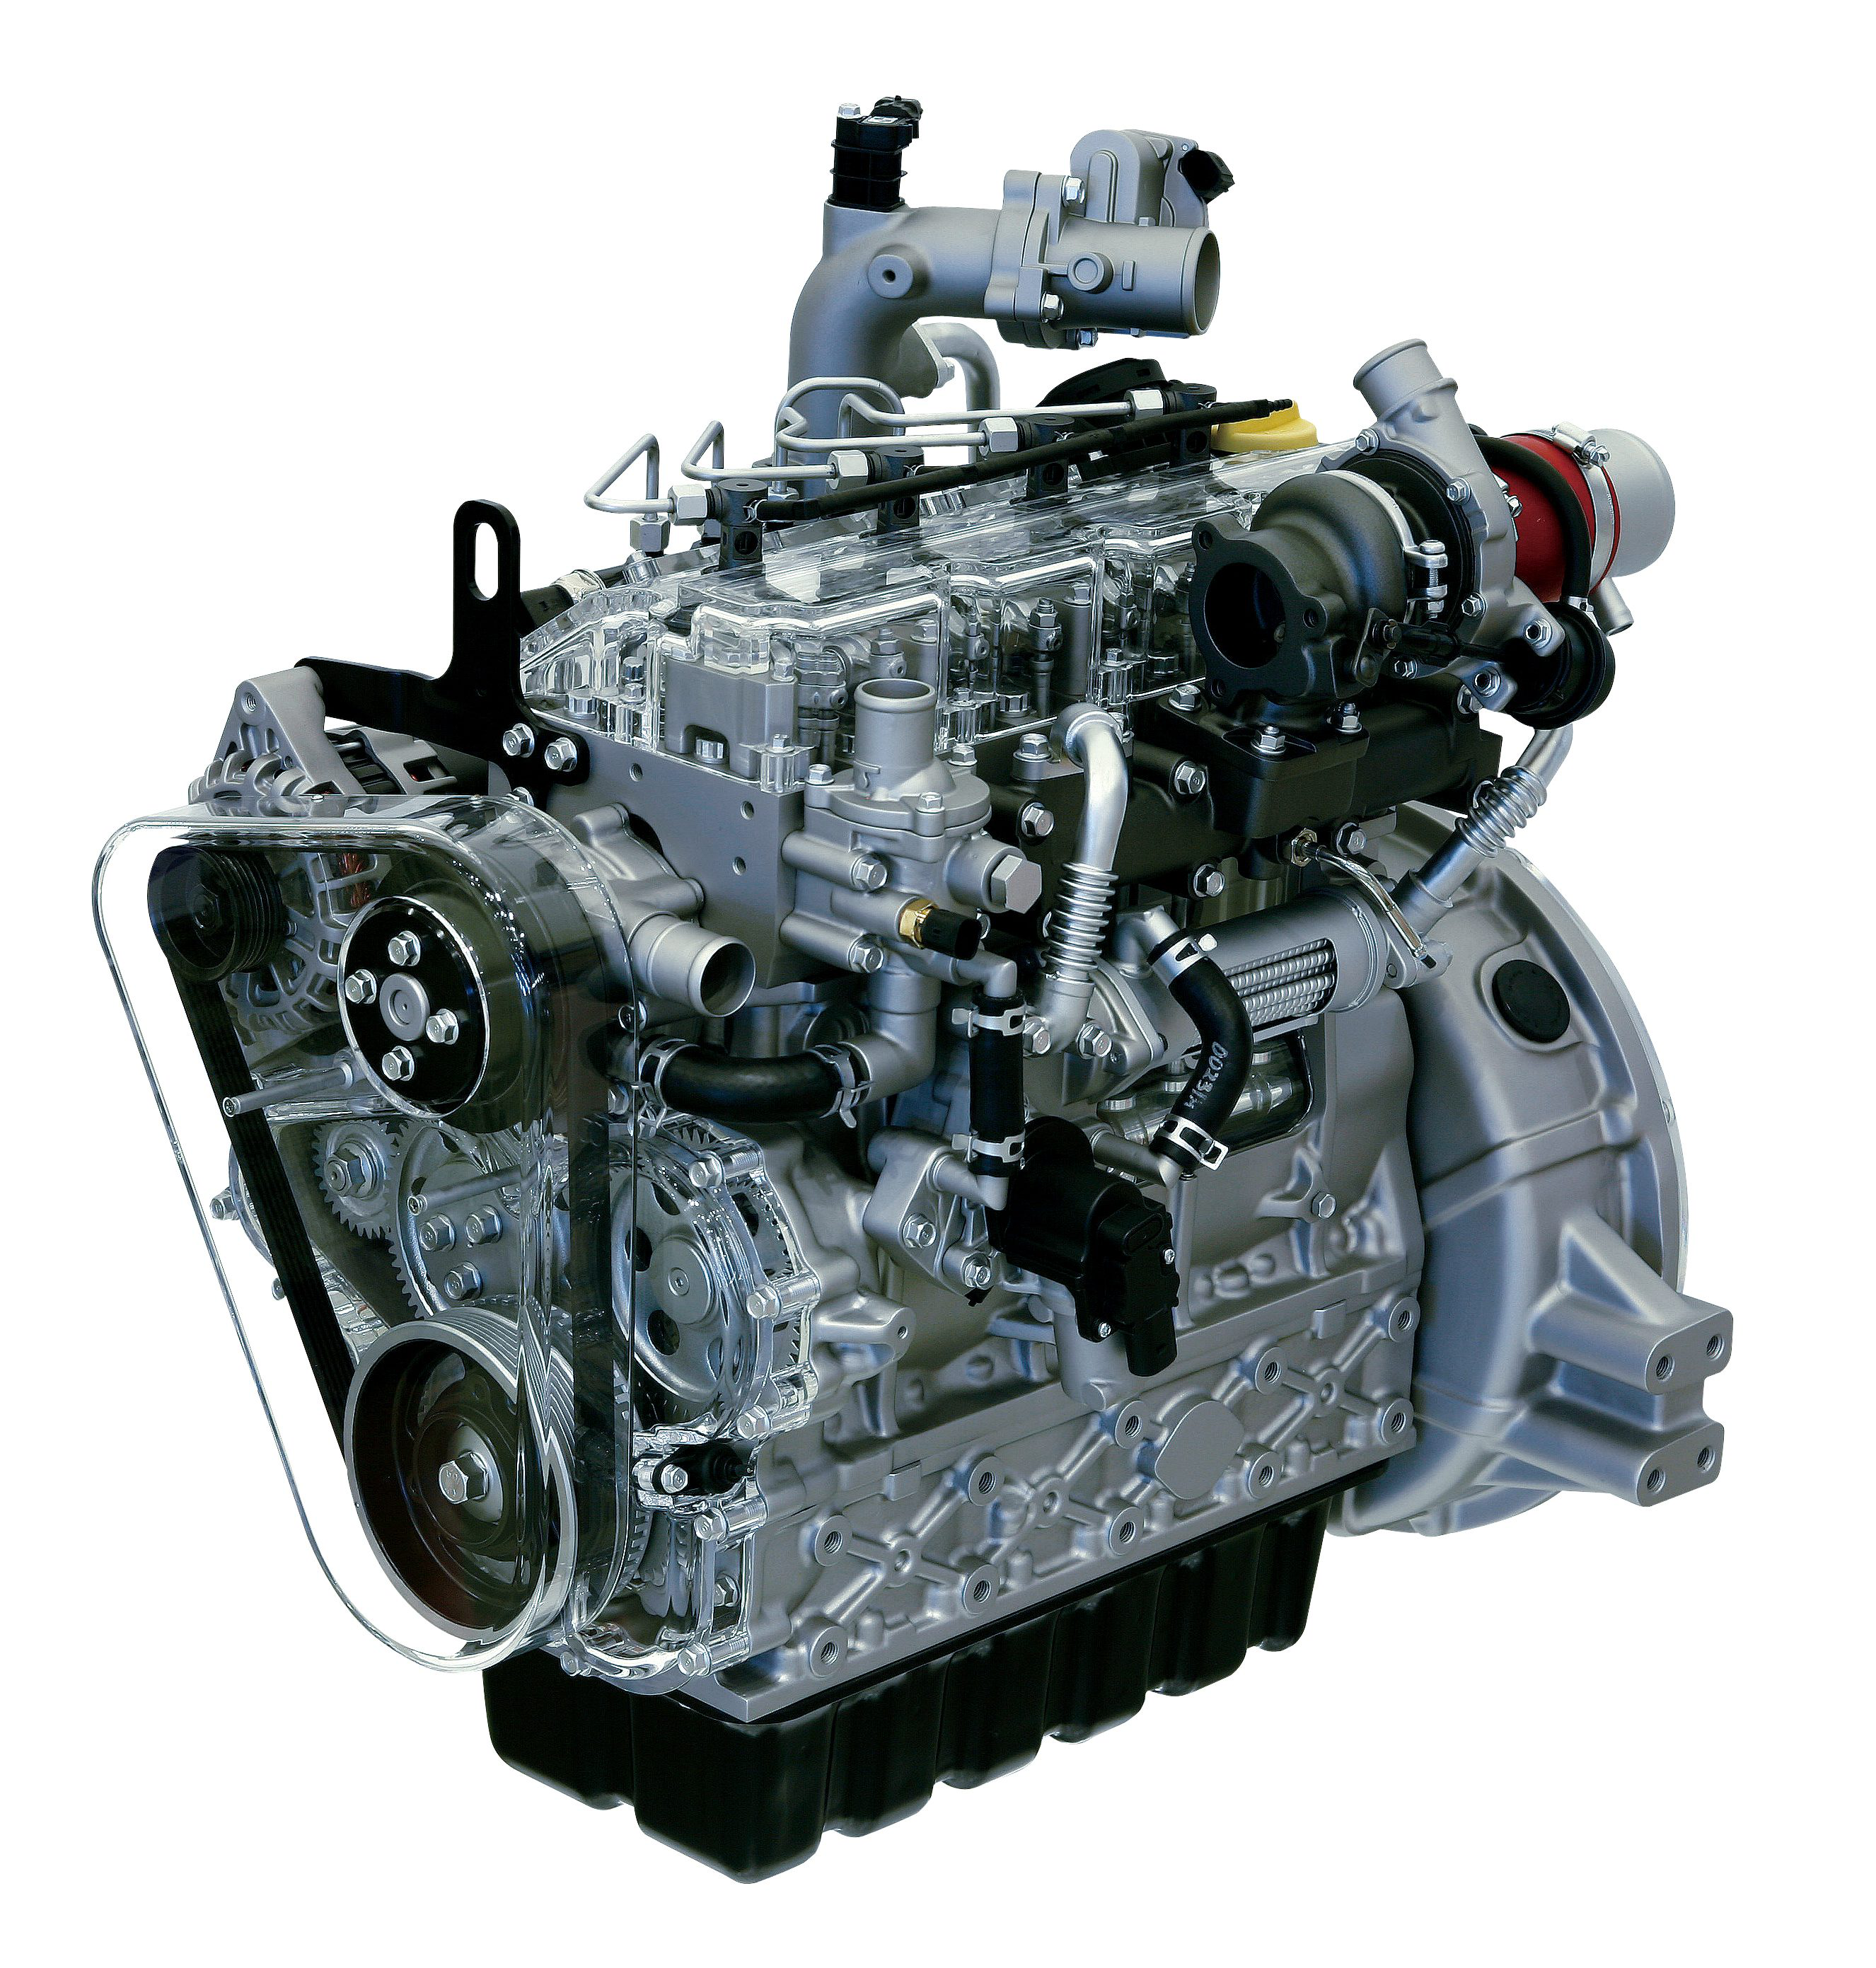 Doosan delivers DPF-free engines for Tier 4 Final